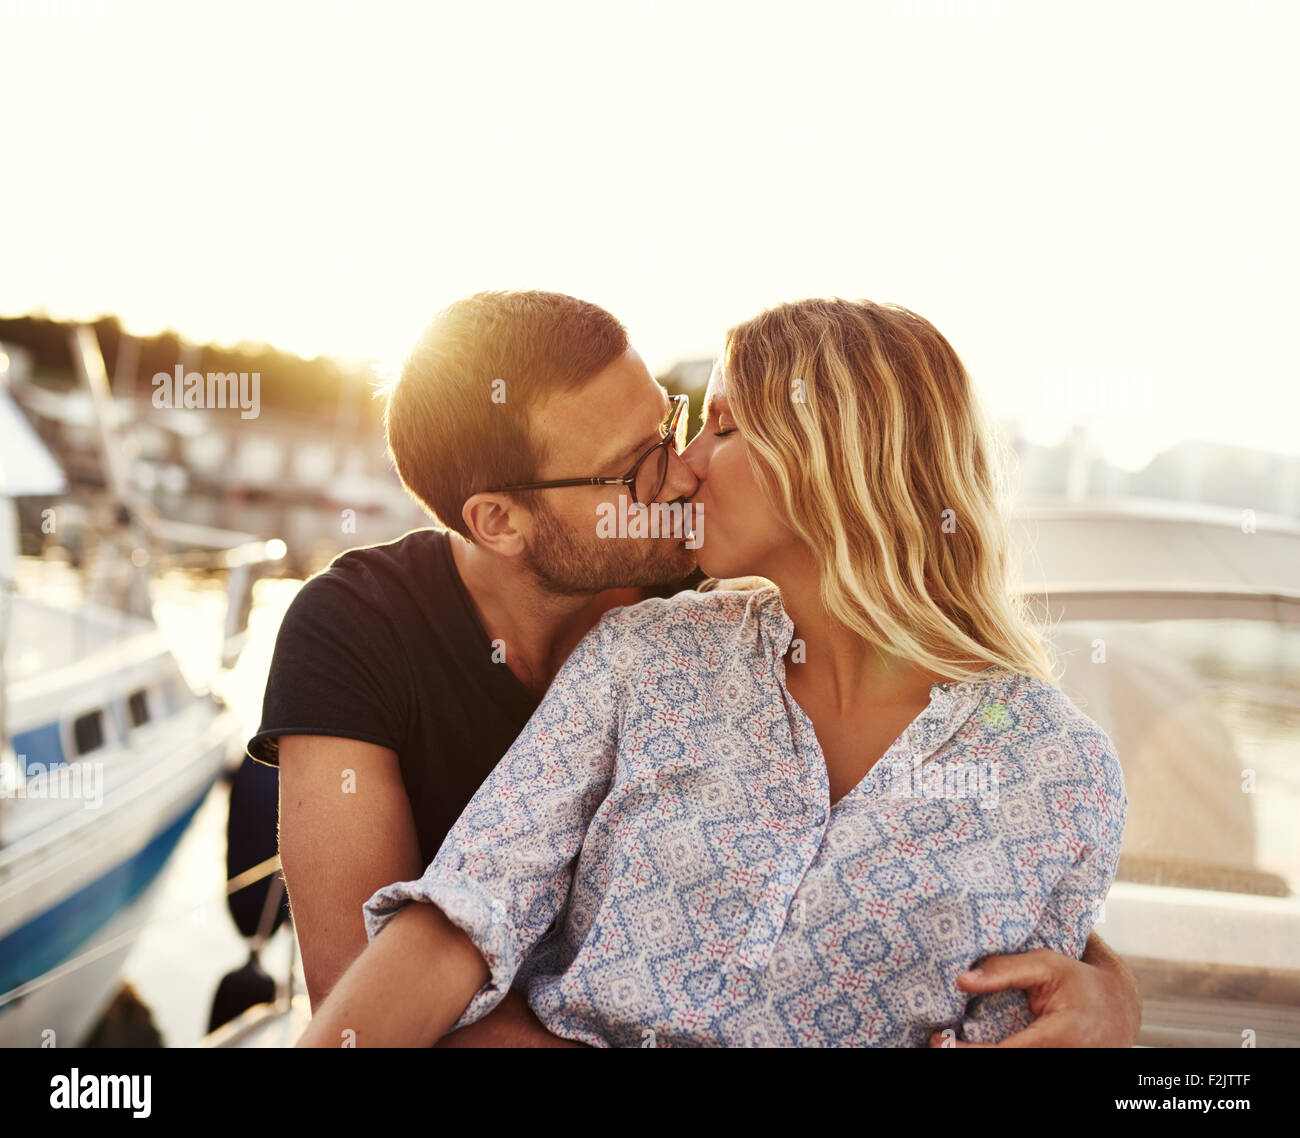 Man And Woman Kissing on a Boat, Sun Setting - Stock Image